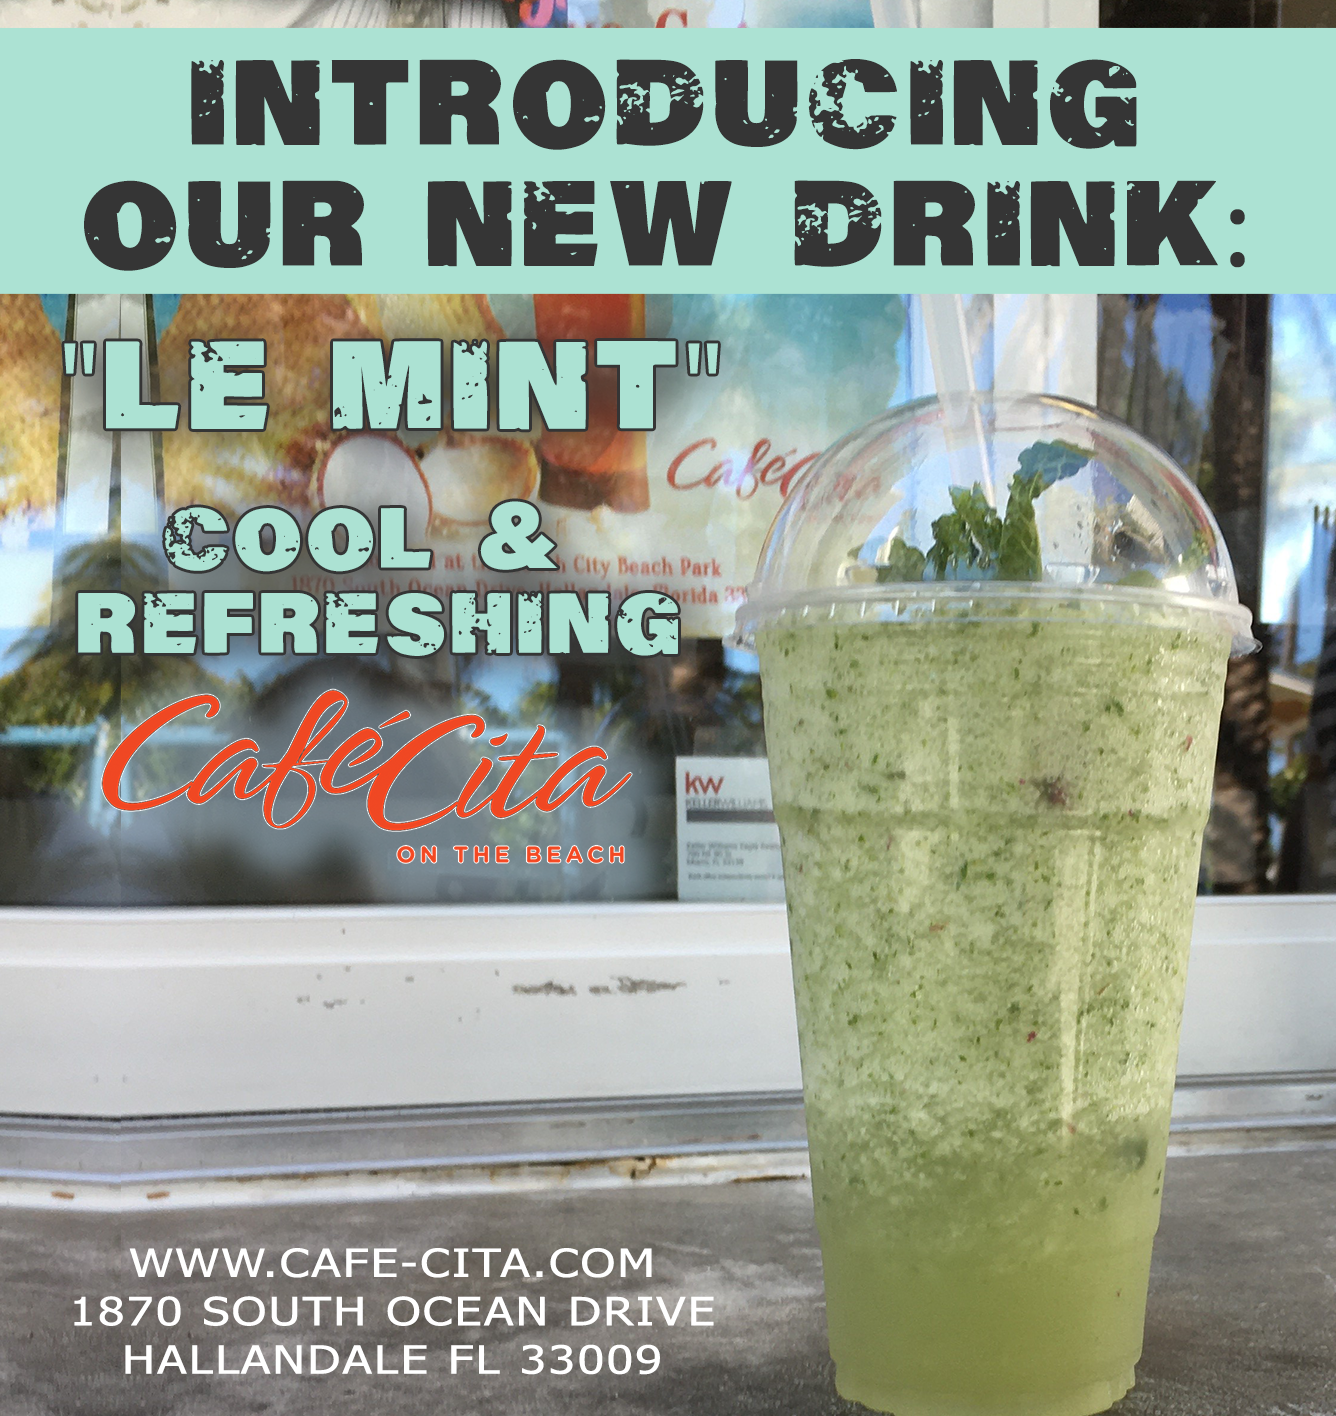 "introducing our new drink: ""le mint"" cool & refreshing. Cafe City On the beach. www.cafe-cita.com . 1870 south ocean drive, hallandale, fl, 33009"